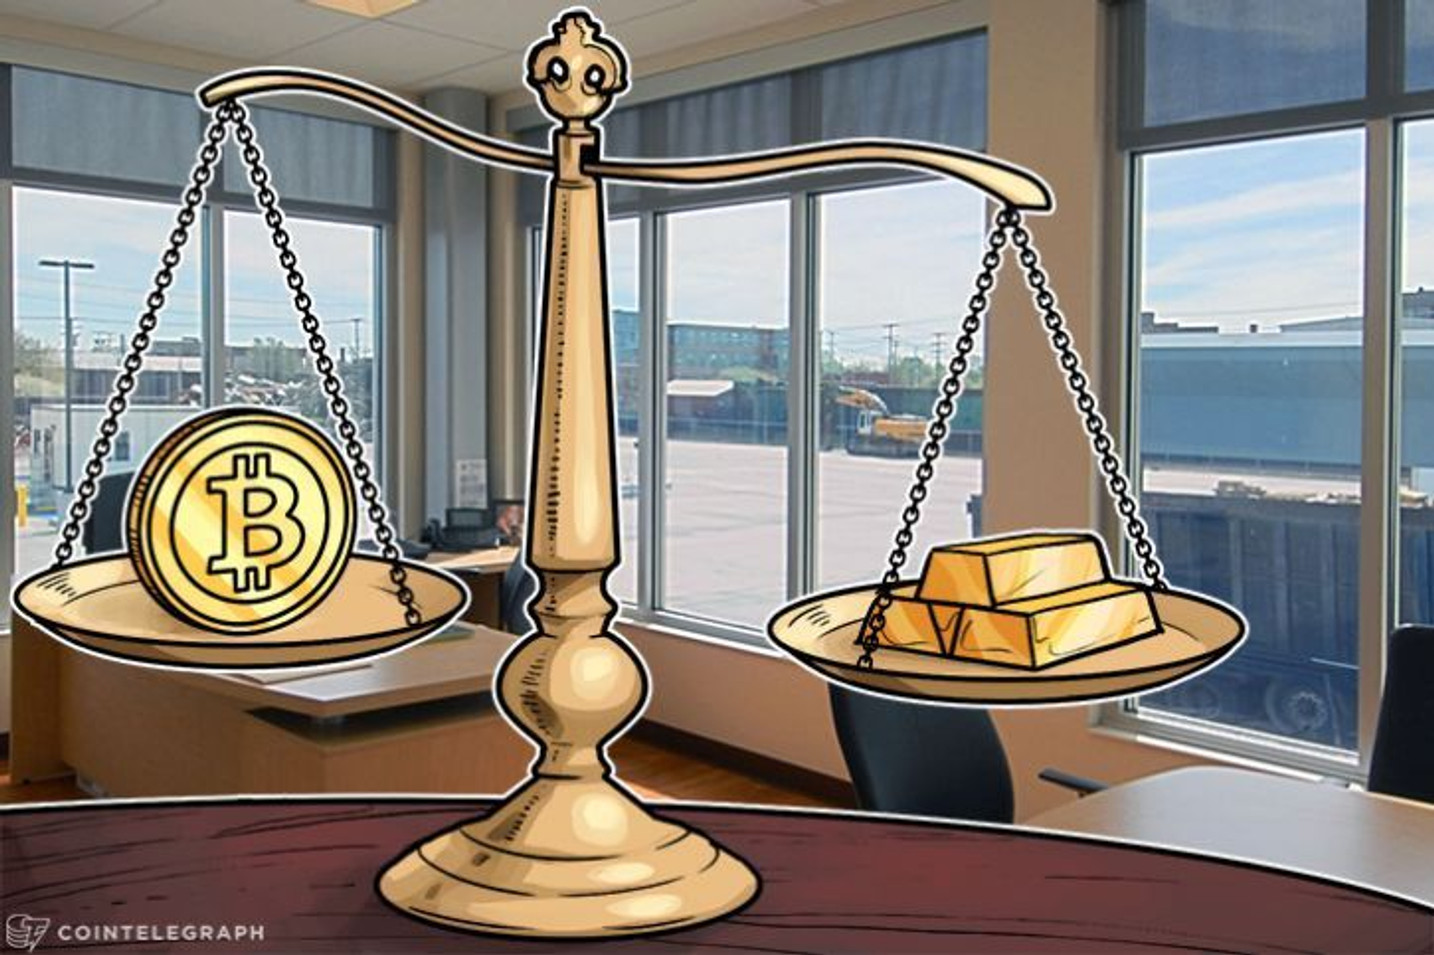 St. Louis Fed Sees Future in Crypto As Important Asset Class, Bitcoin As Digital Gold